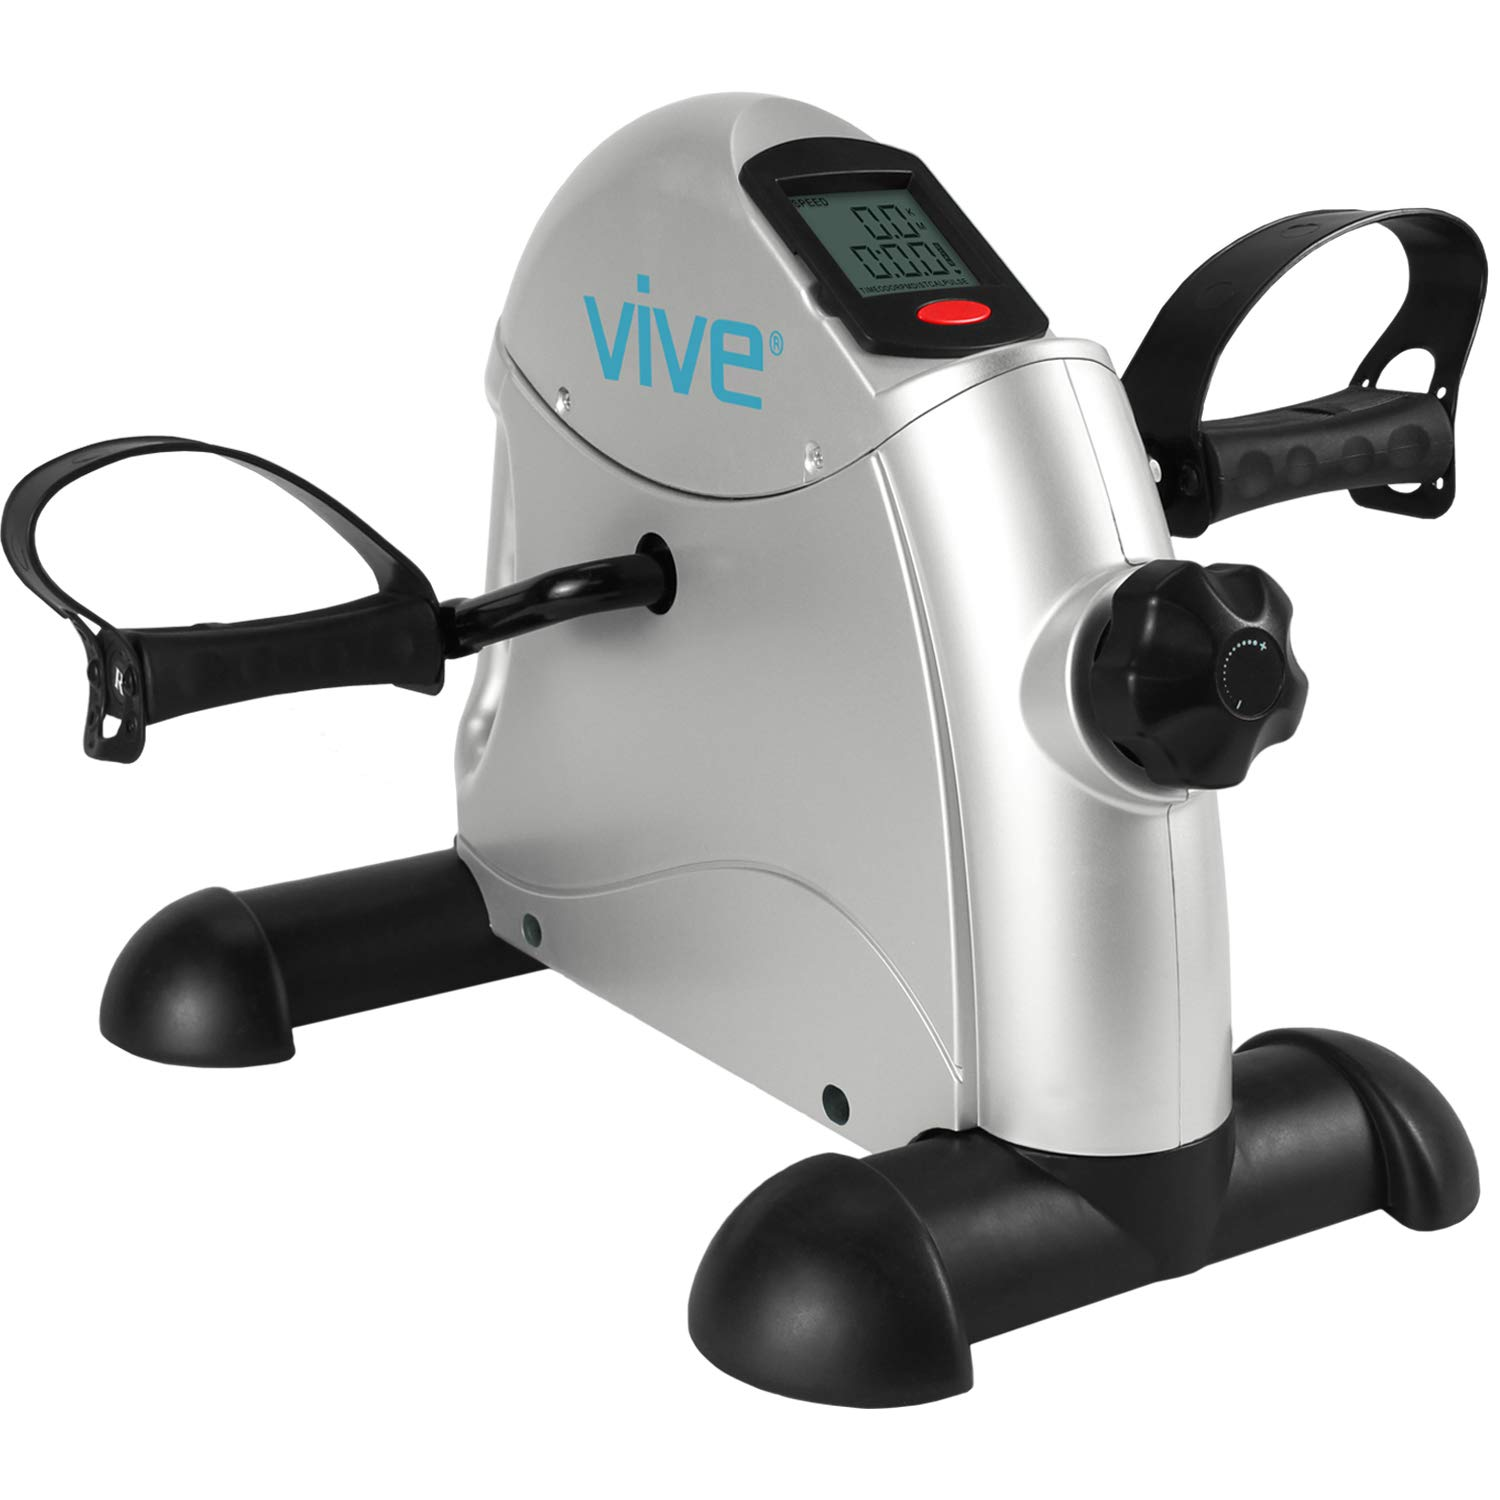 Vive Pedal Exerciser - Exercise Pedals for Seated Leg and Arm Workout - Sitting Mini Cycle Foot Peddler - Low Impact, Portable, Slim Design for Office Desk and Chair - Small, Sitdown Equipment Machine